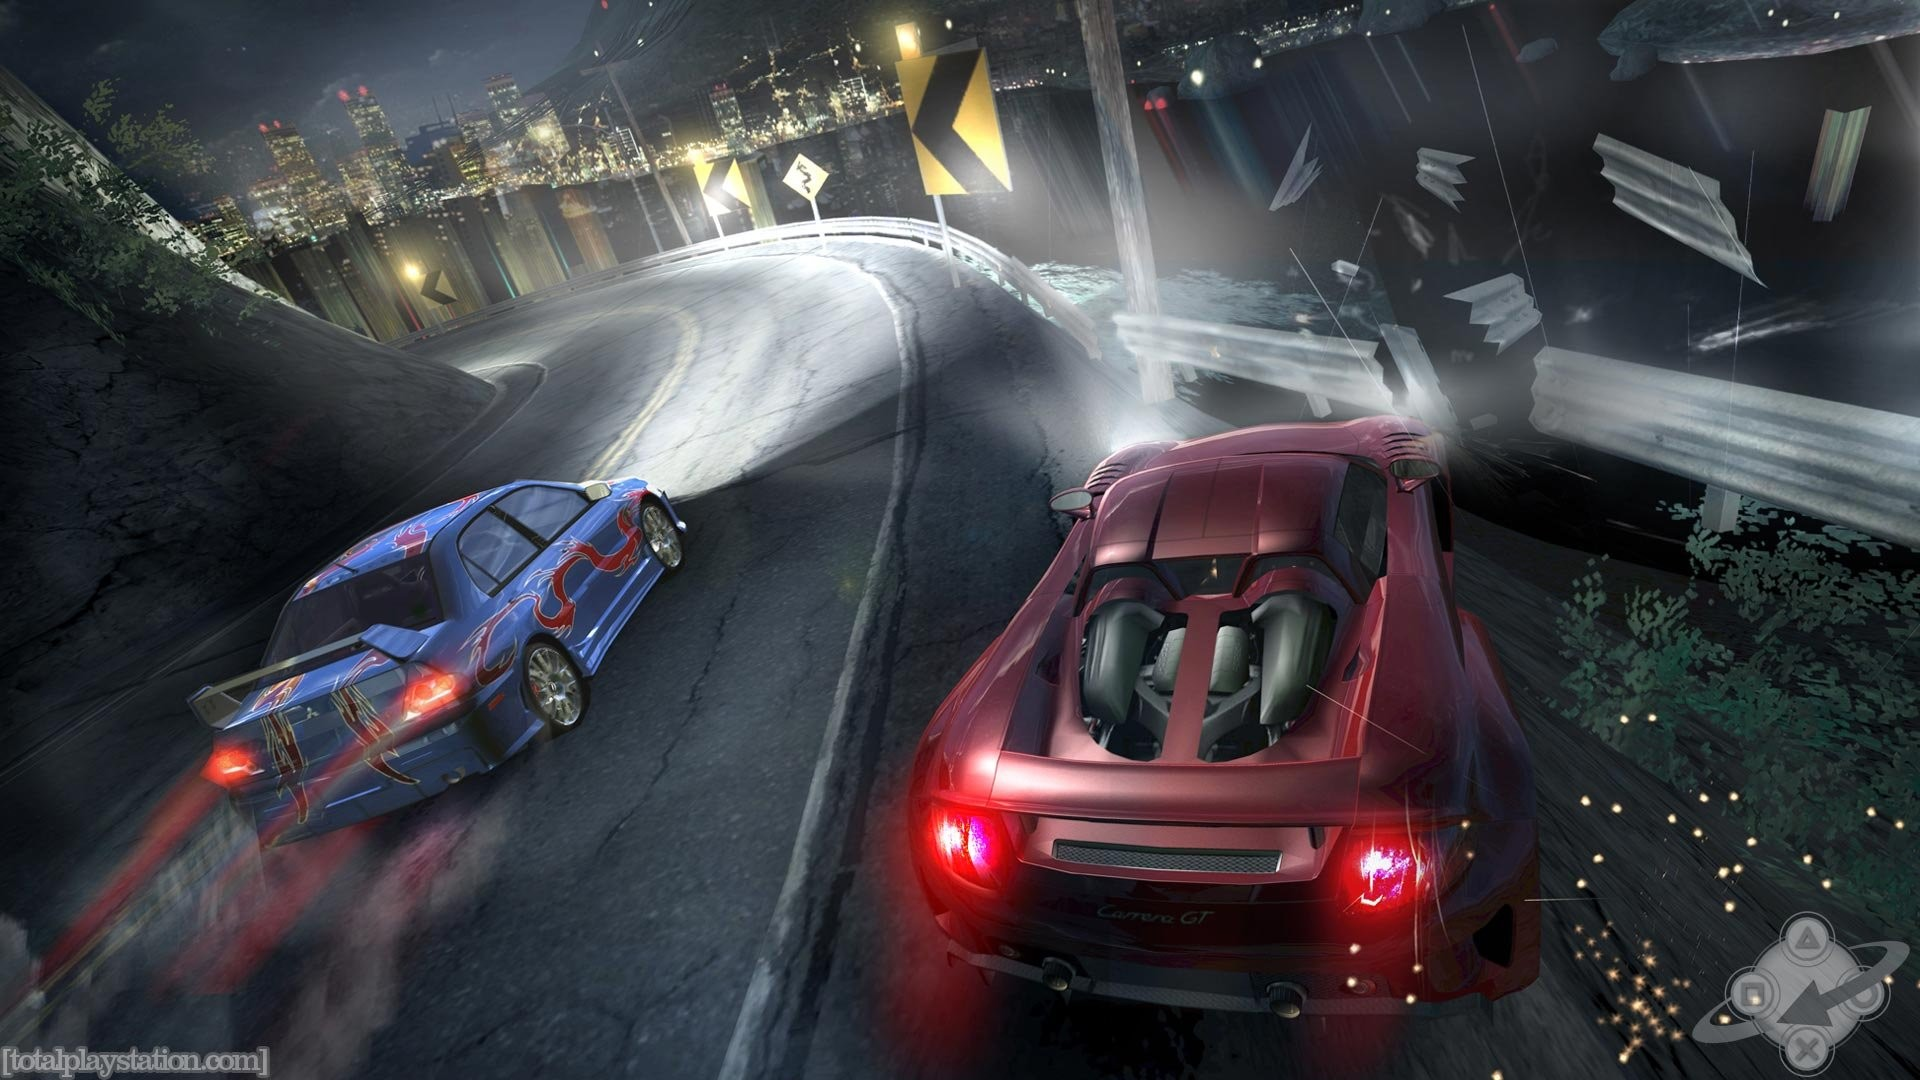 1920x1080 Need For Speed Carbon Collector's Edition